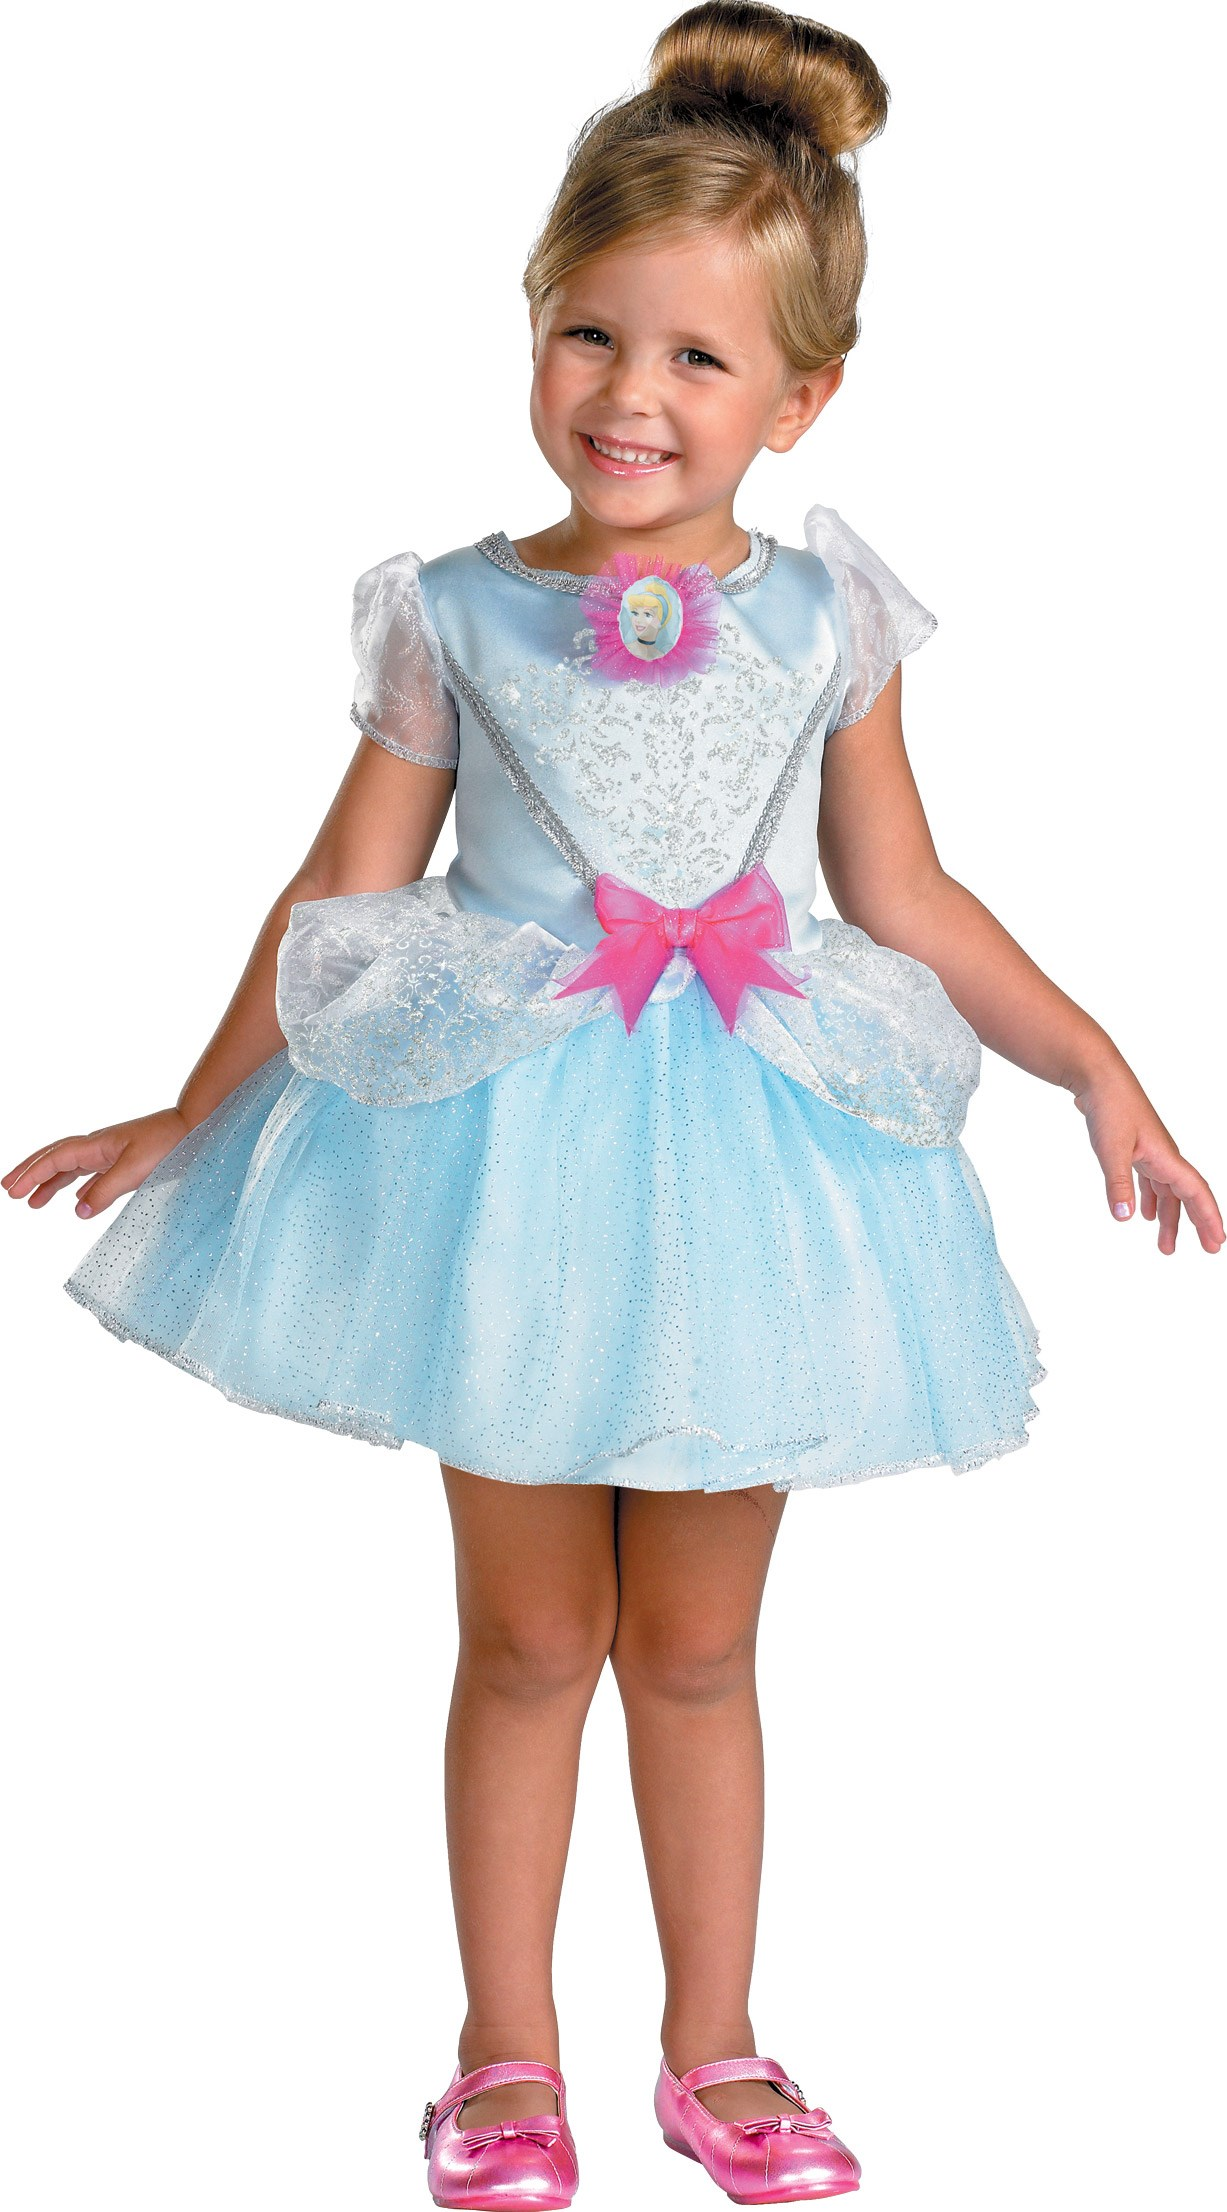 Disney Cinderella Ballerina Toddler / Child Costume Toddler (2T)